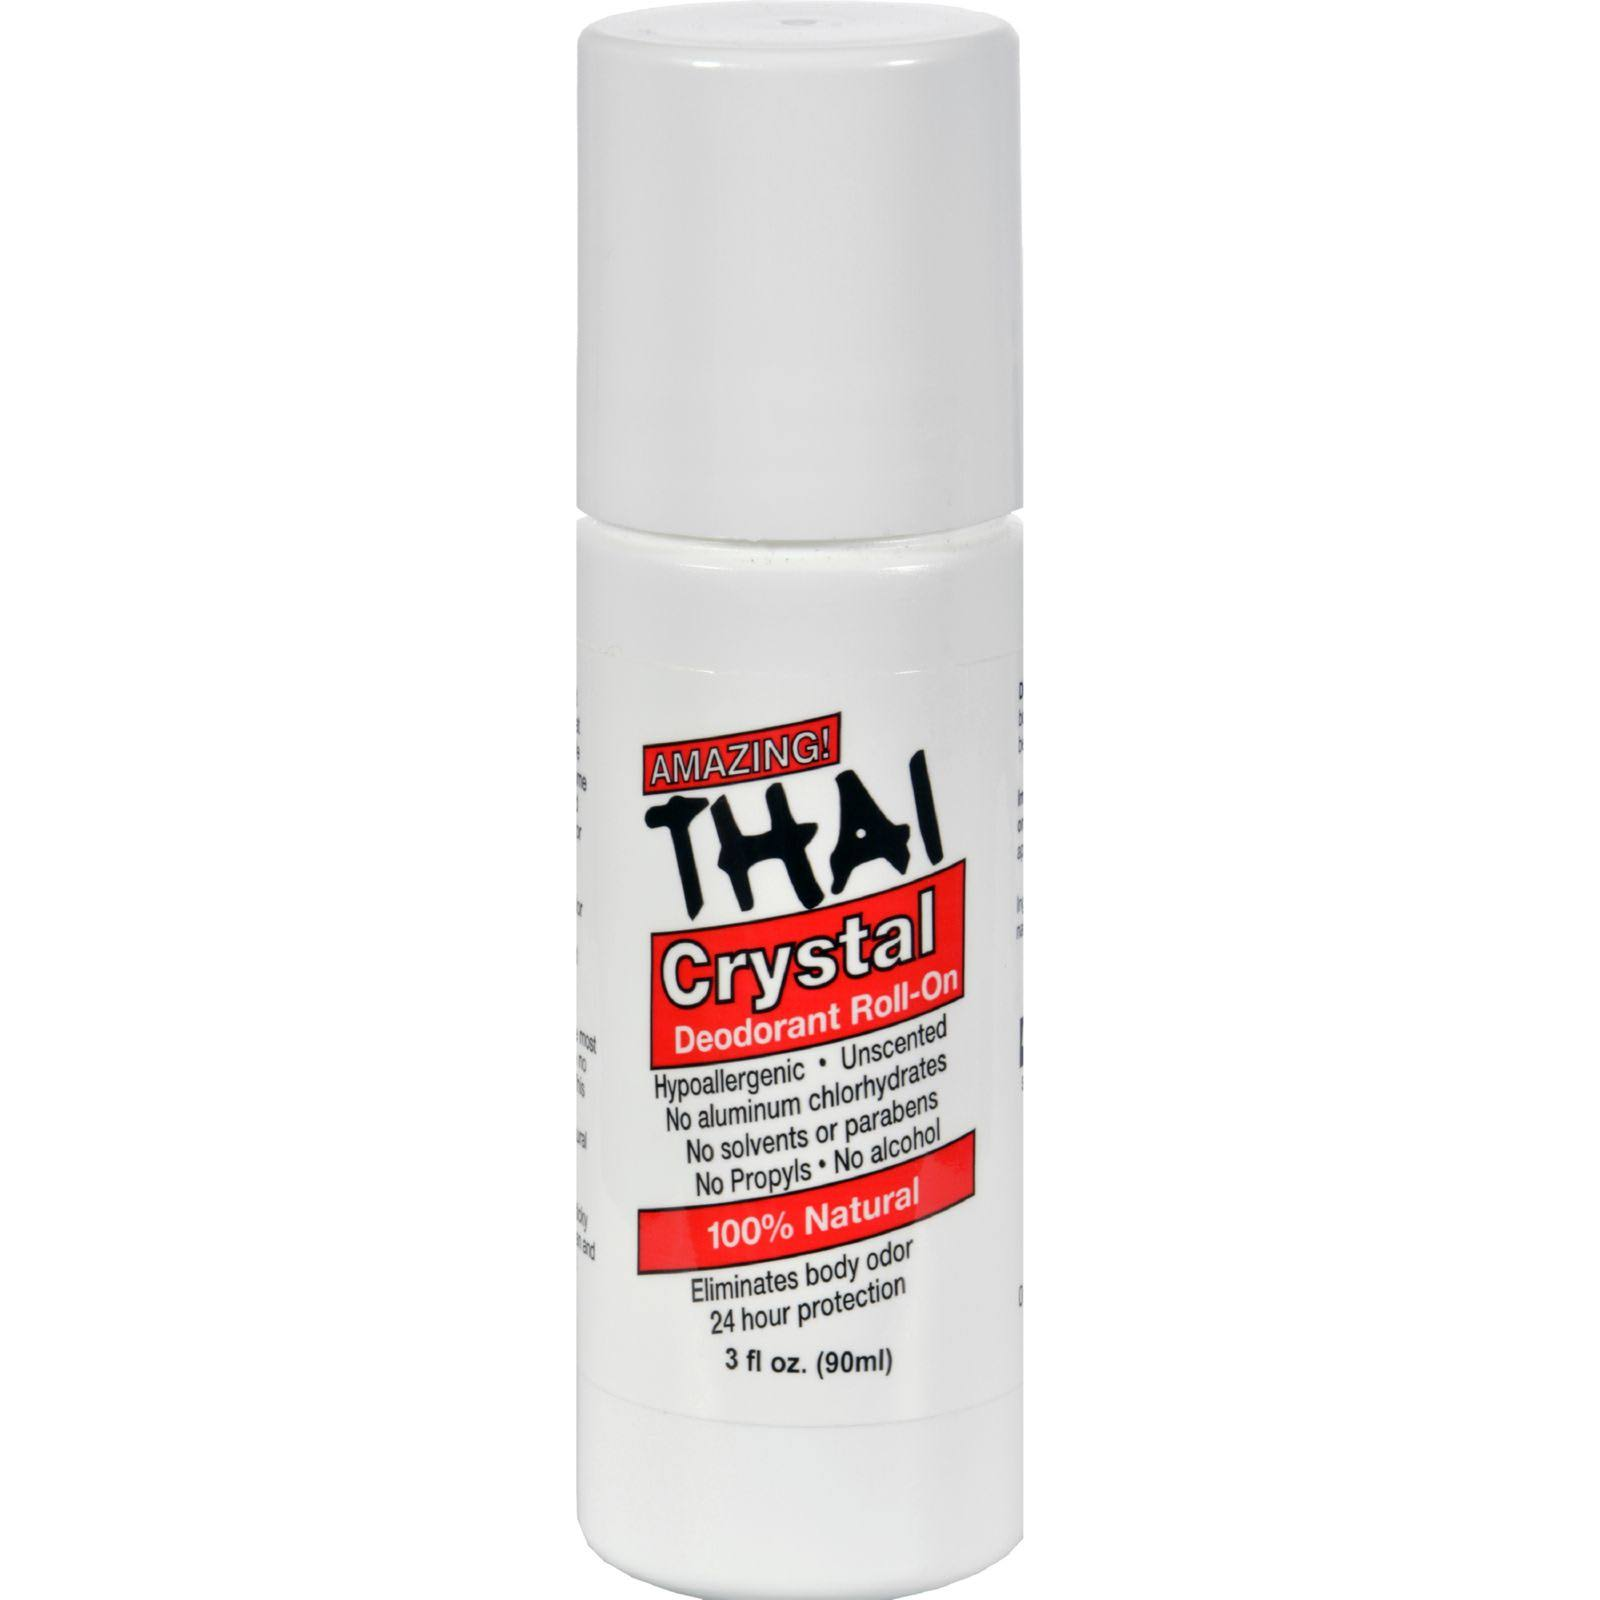 Thai Crystal Deodorants Crystal Mist Roll-On Deodorant